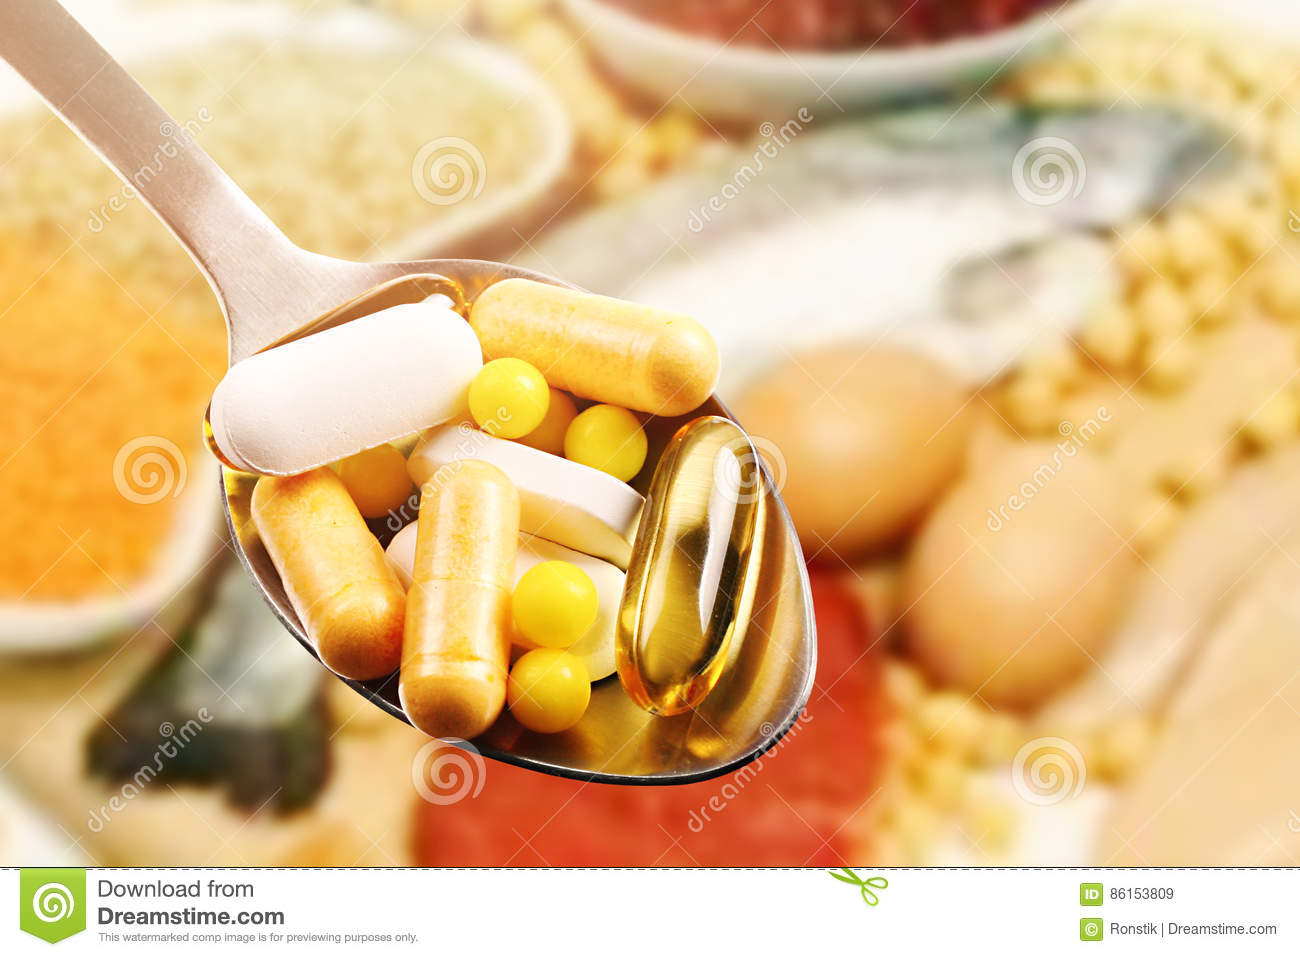 Dietary supplements on protein food background